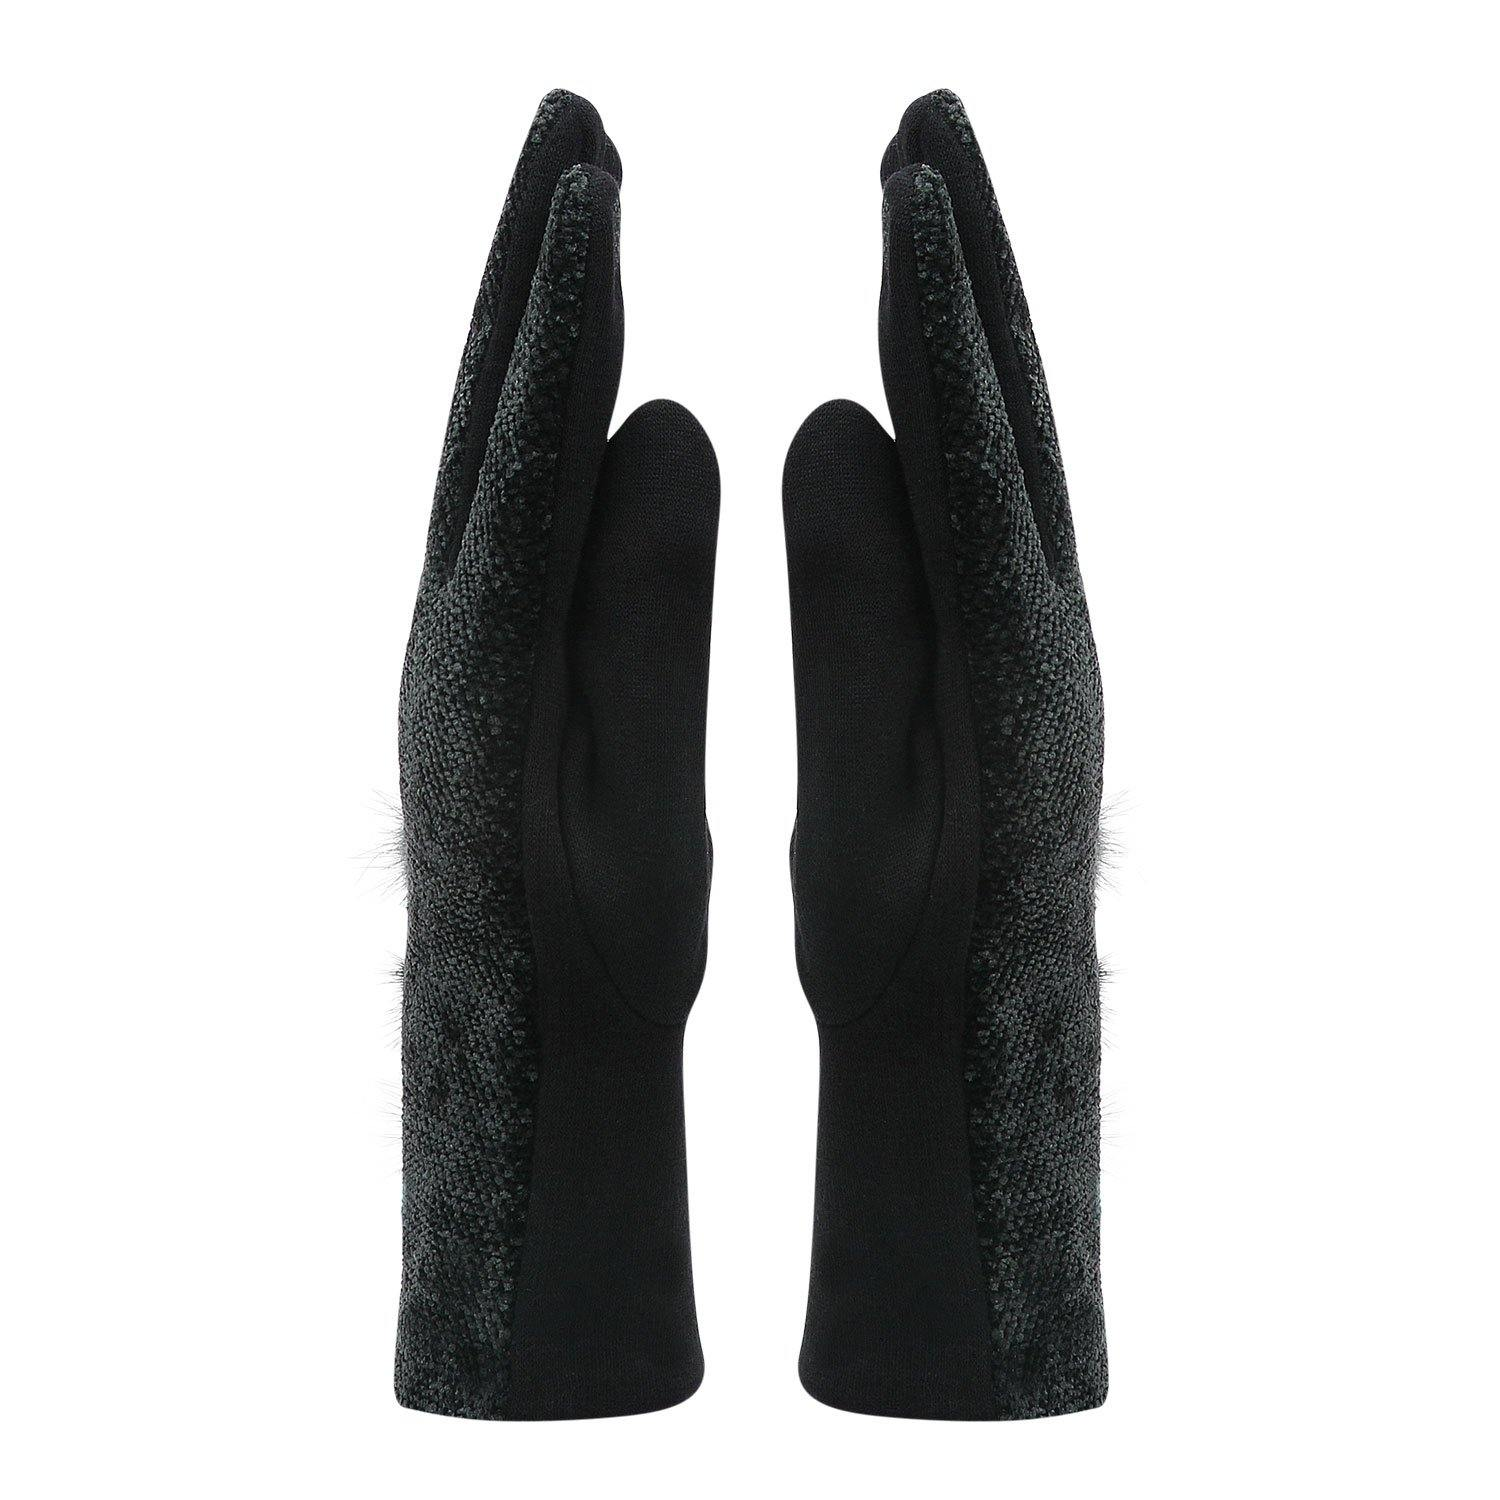 Fashionable Winter Gloves For Women - Black